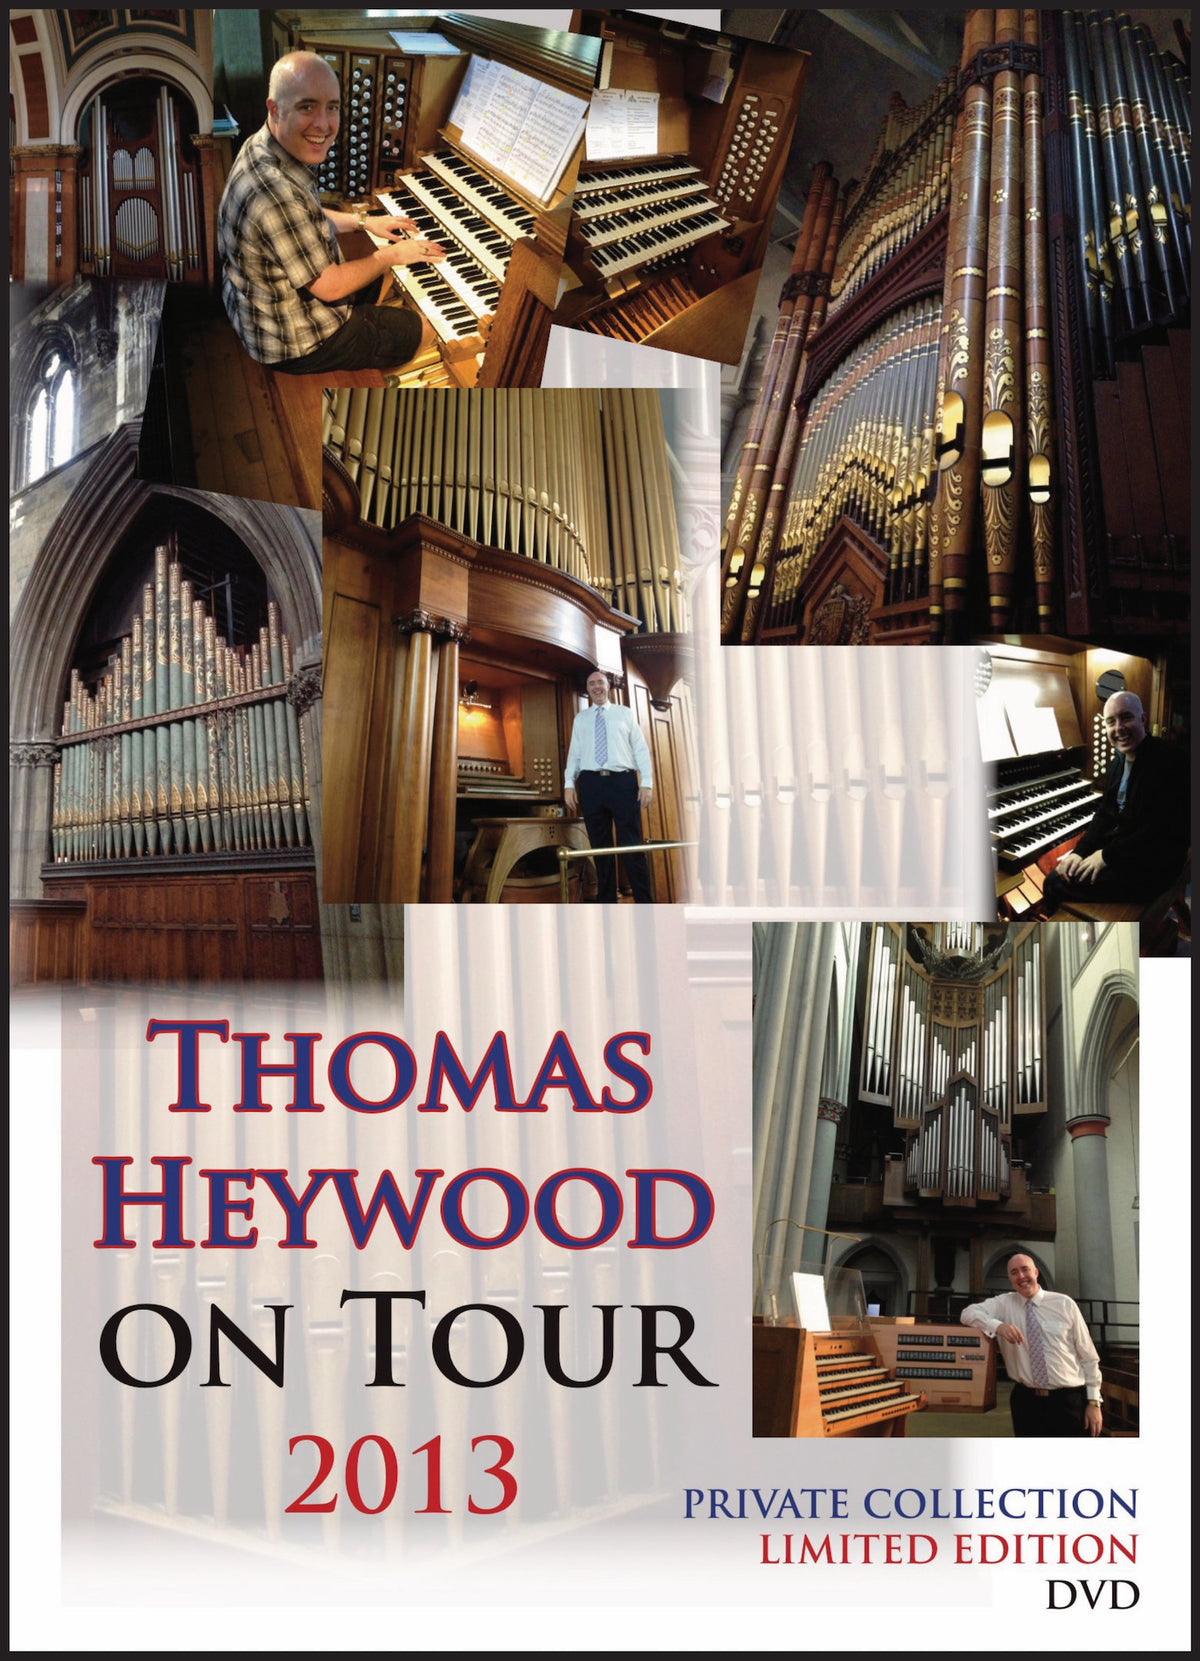 Thomas Heywood on Tour • 2013 (MP4 Film) | Thomas Heywood | Concert Organ International